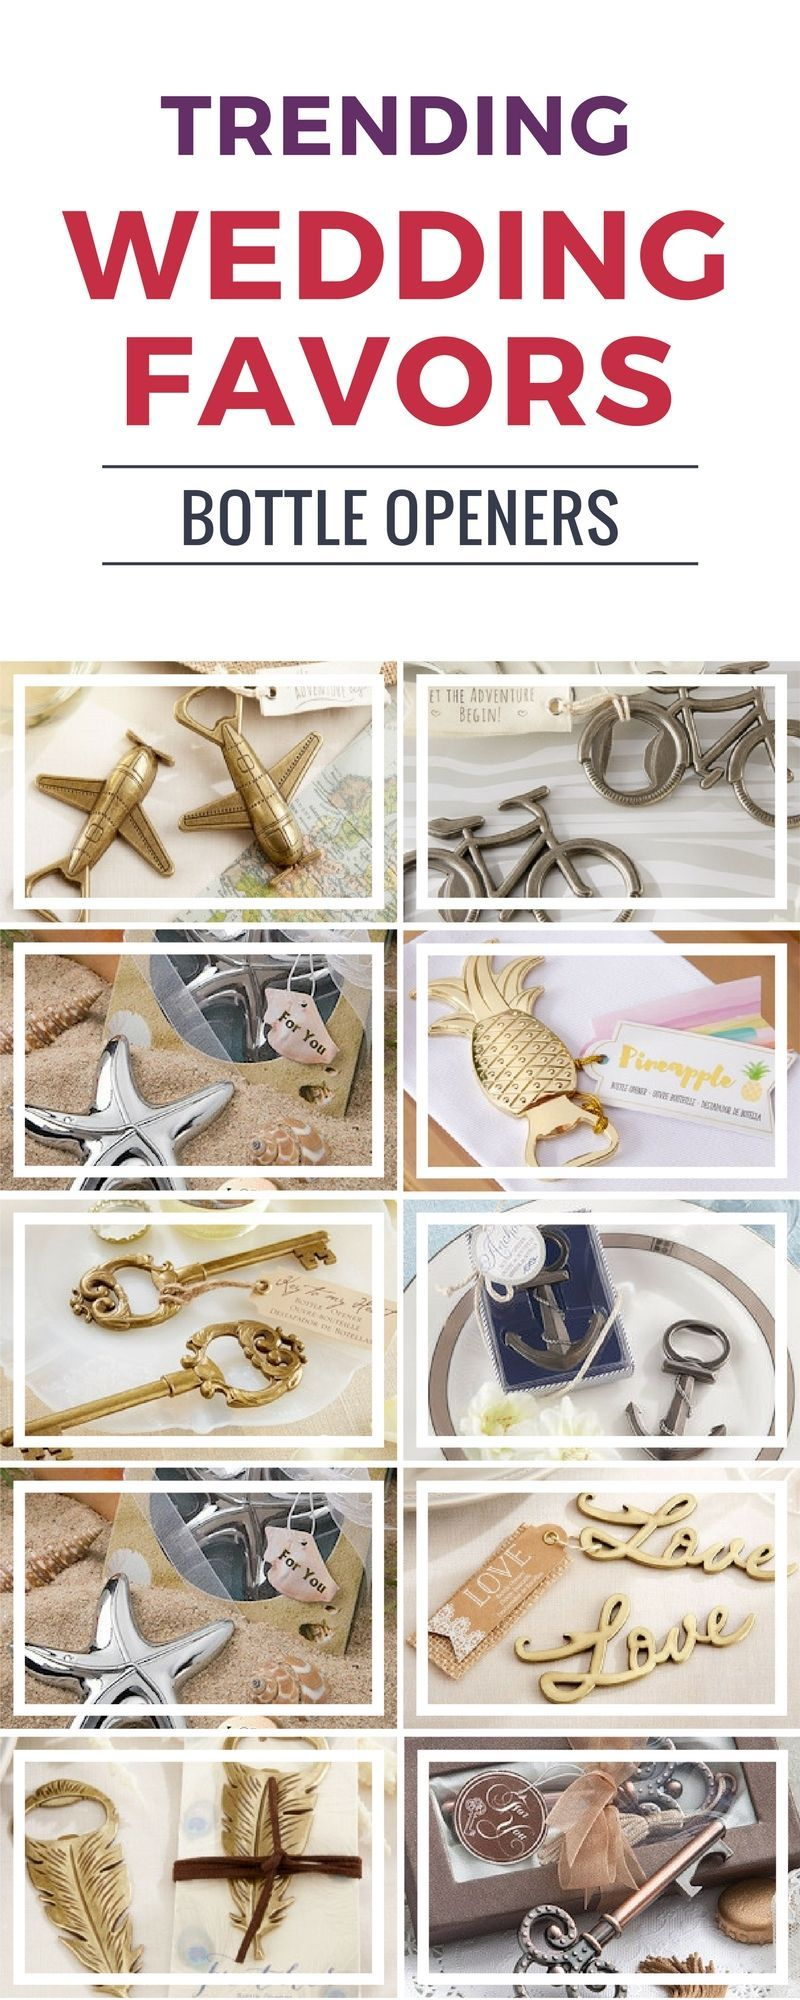 These trending bottle openers wedding favors are great! | Wedding ...